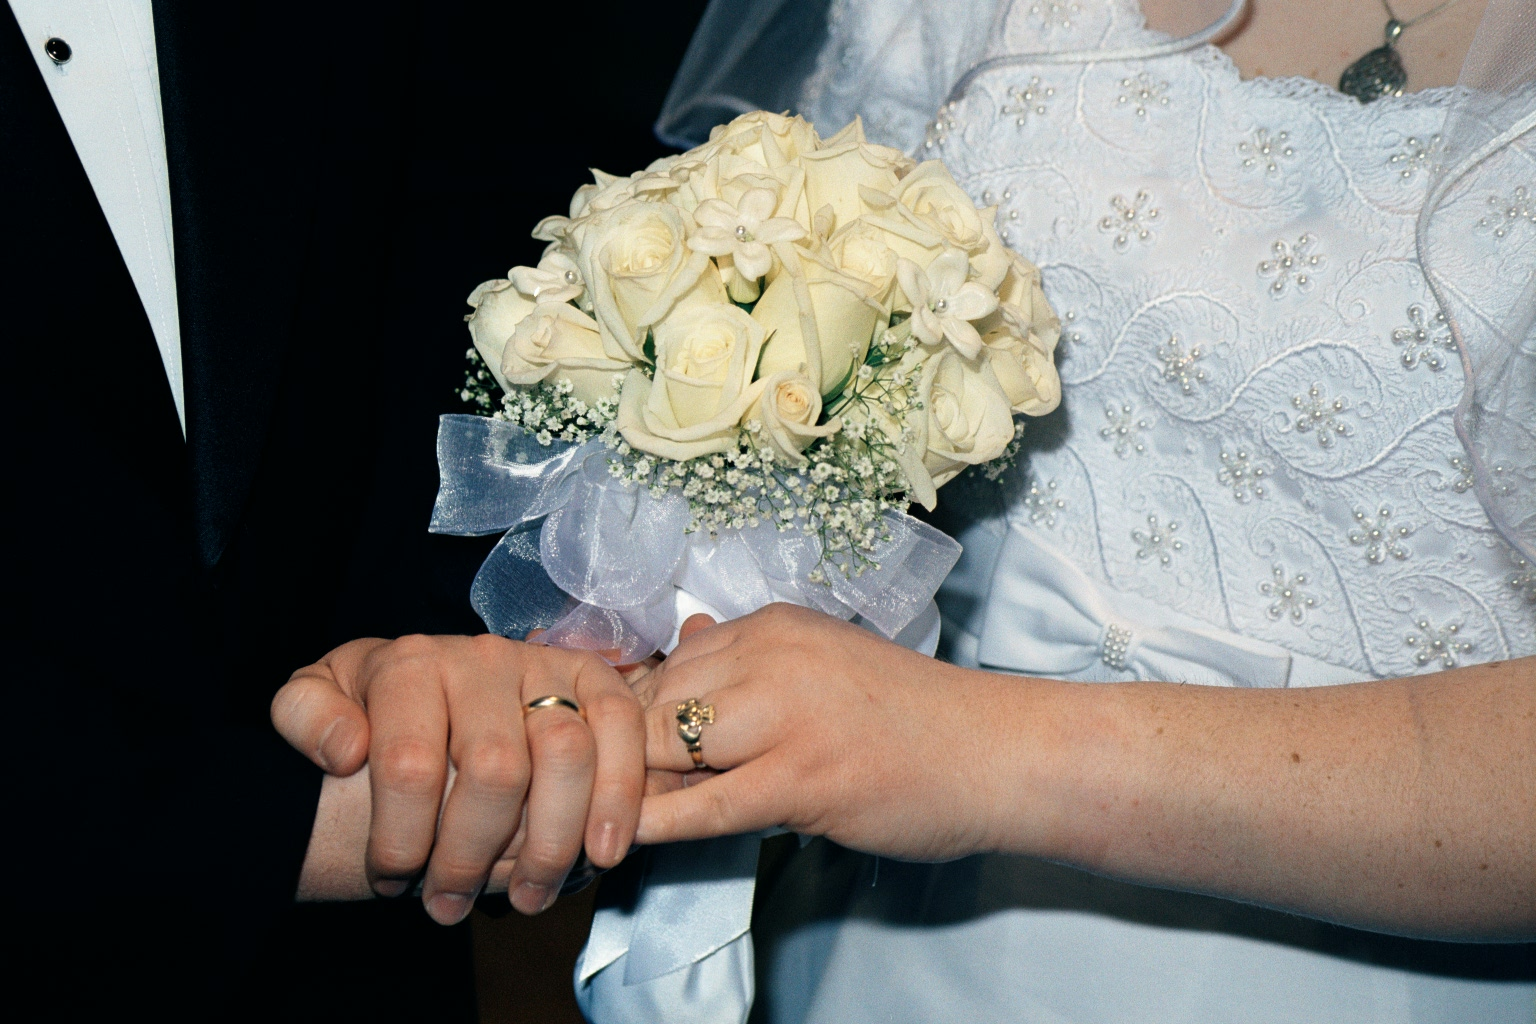 Bouquet and rings.